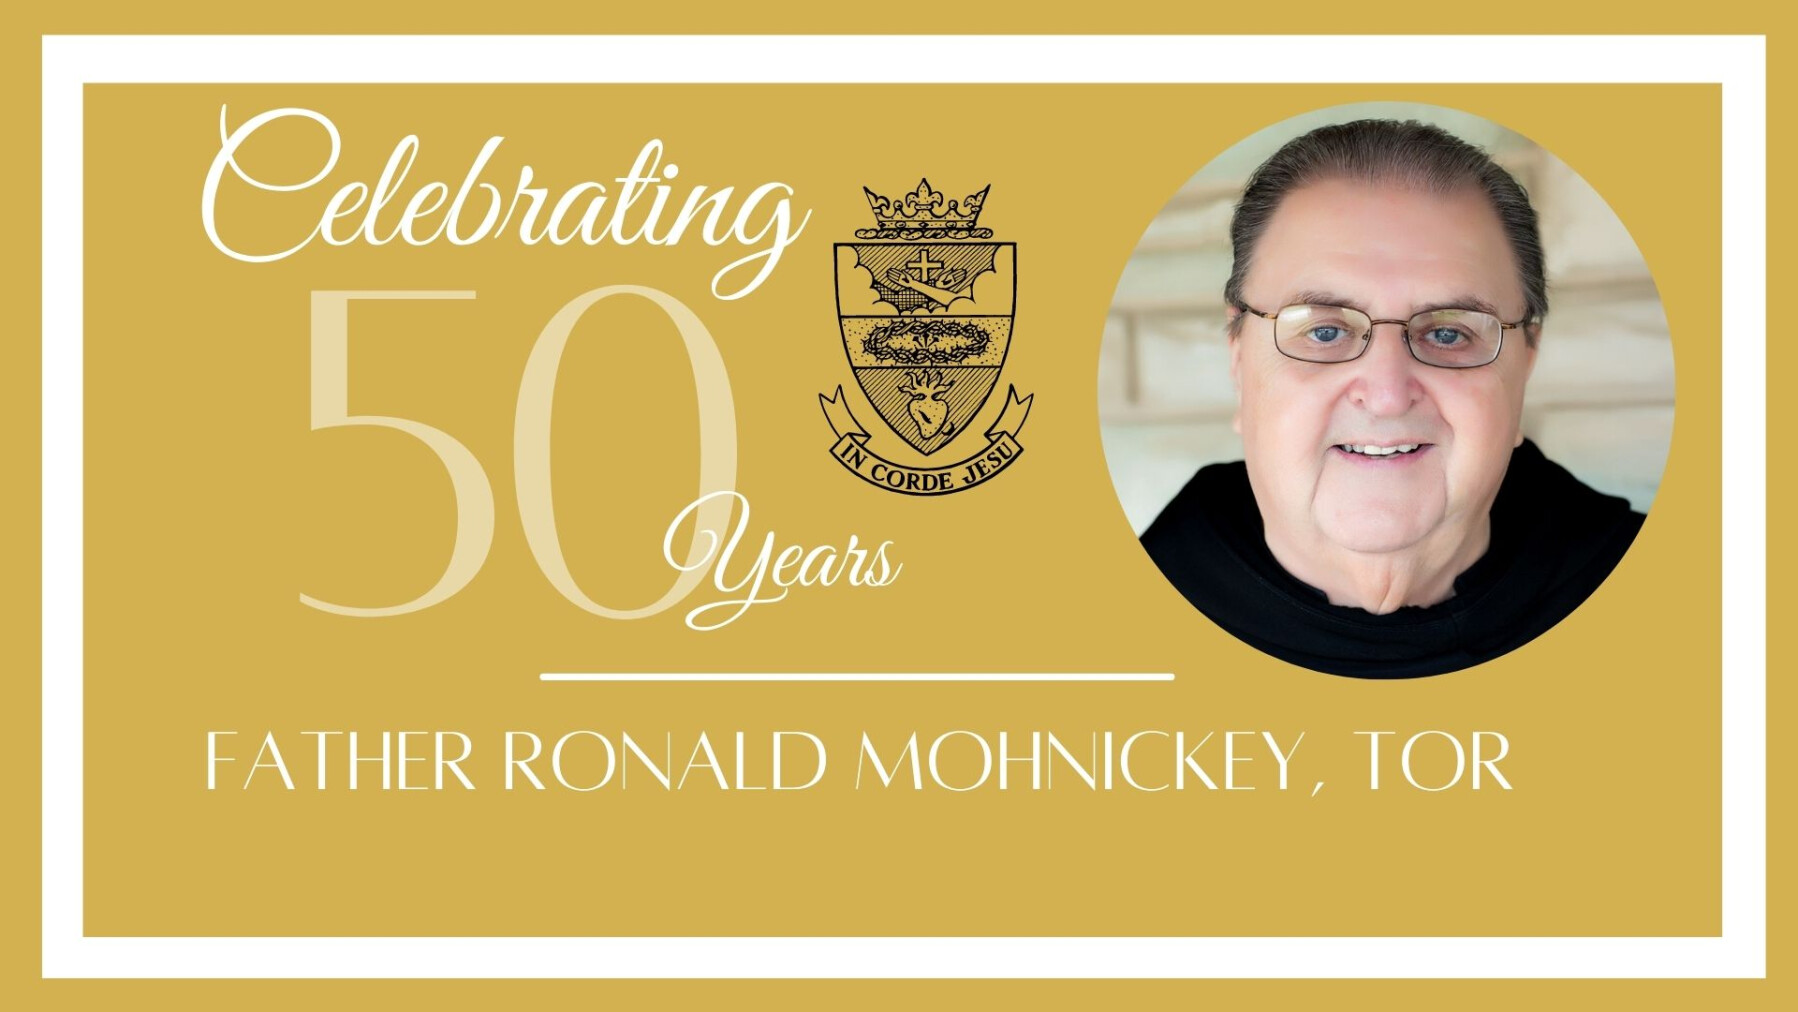 Celebration of Fr. Ronald's 50th Anniversary to the priesthood